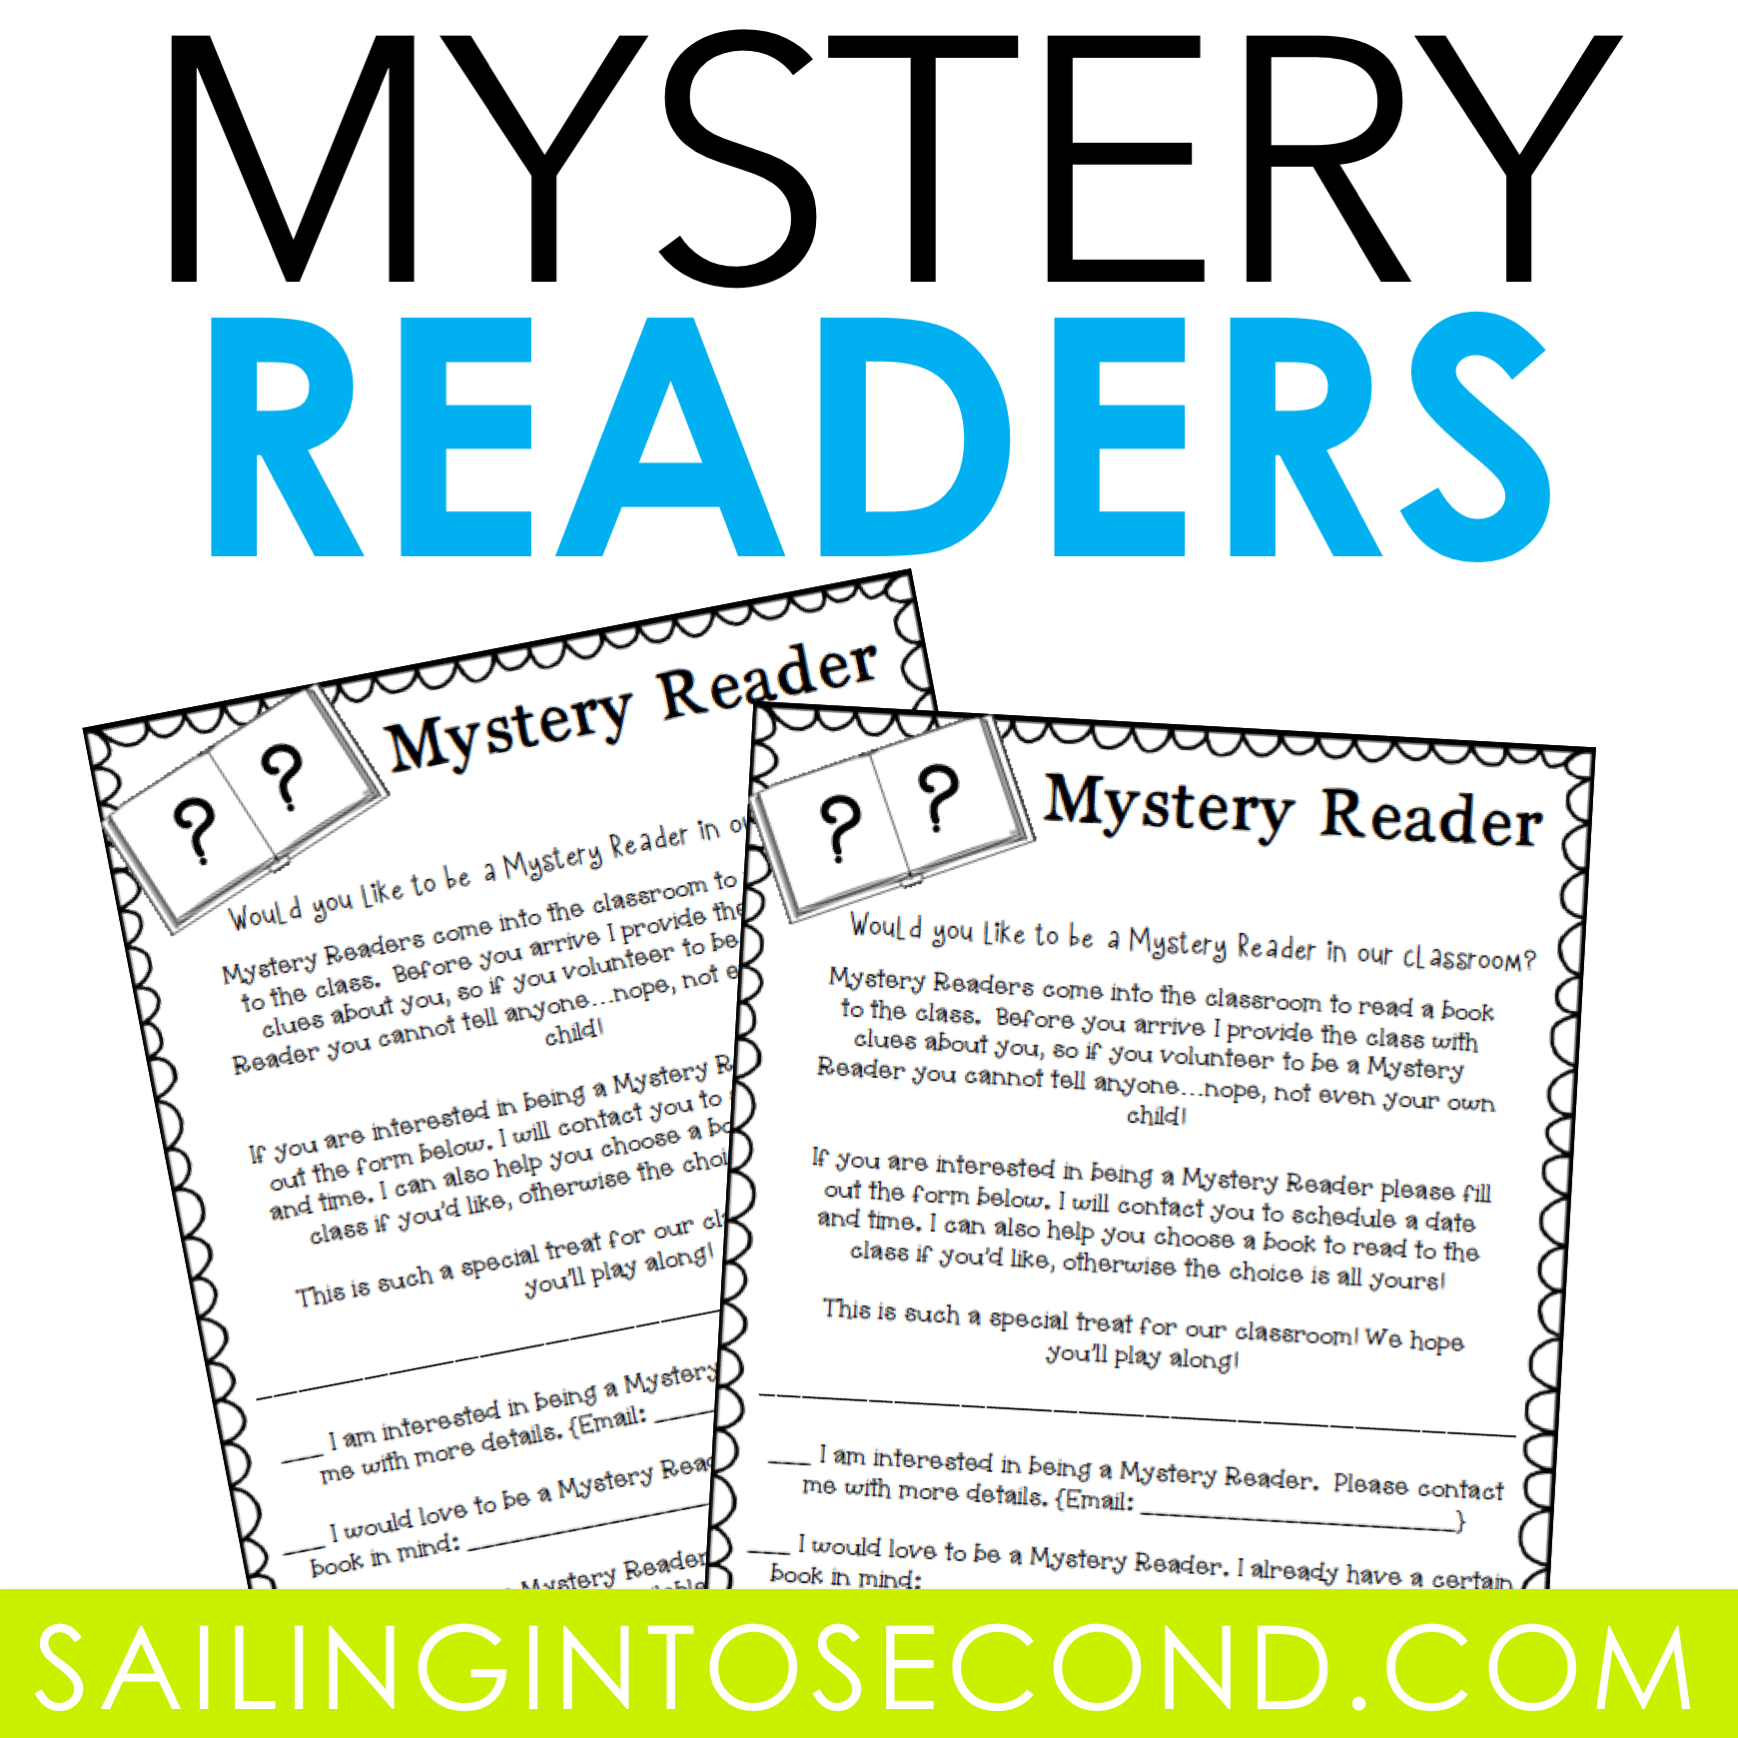 Mystery Reader: Sailing Into Second